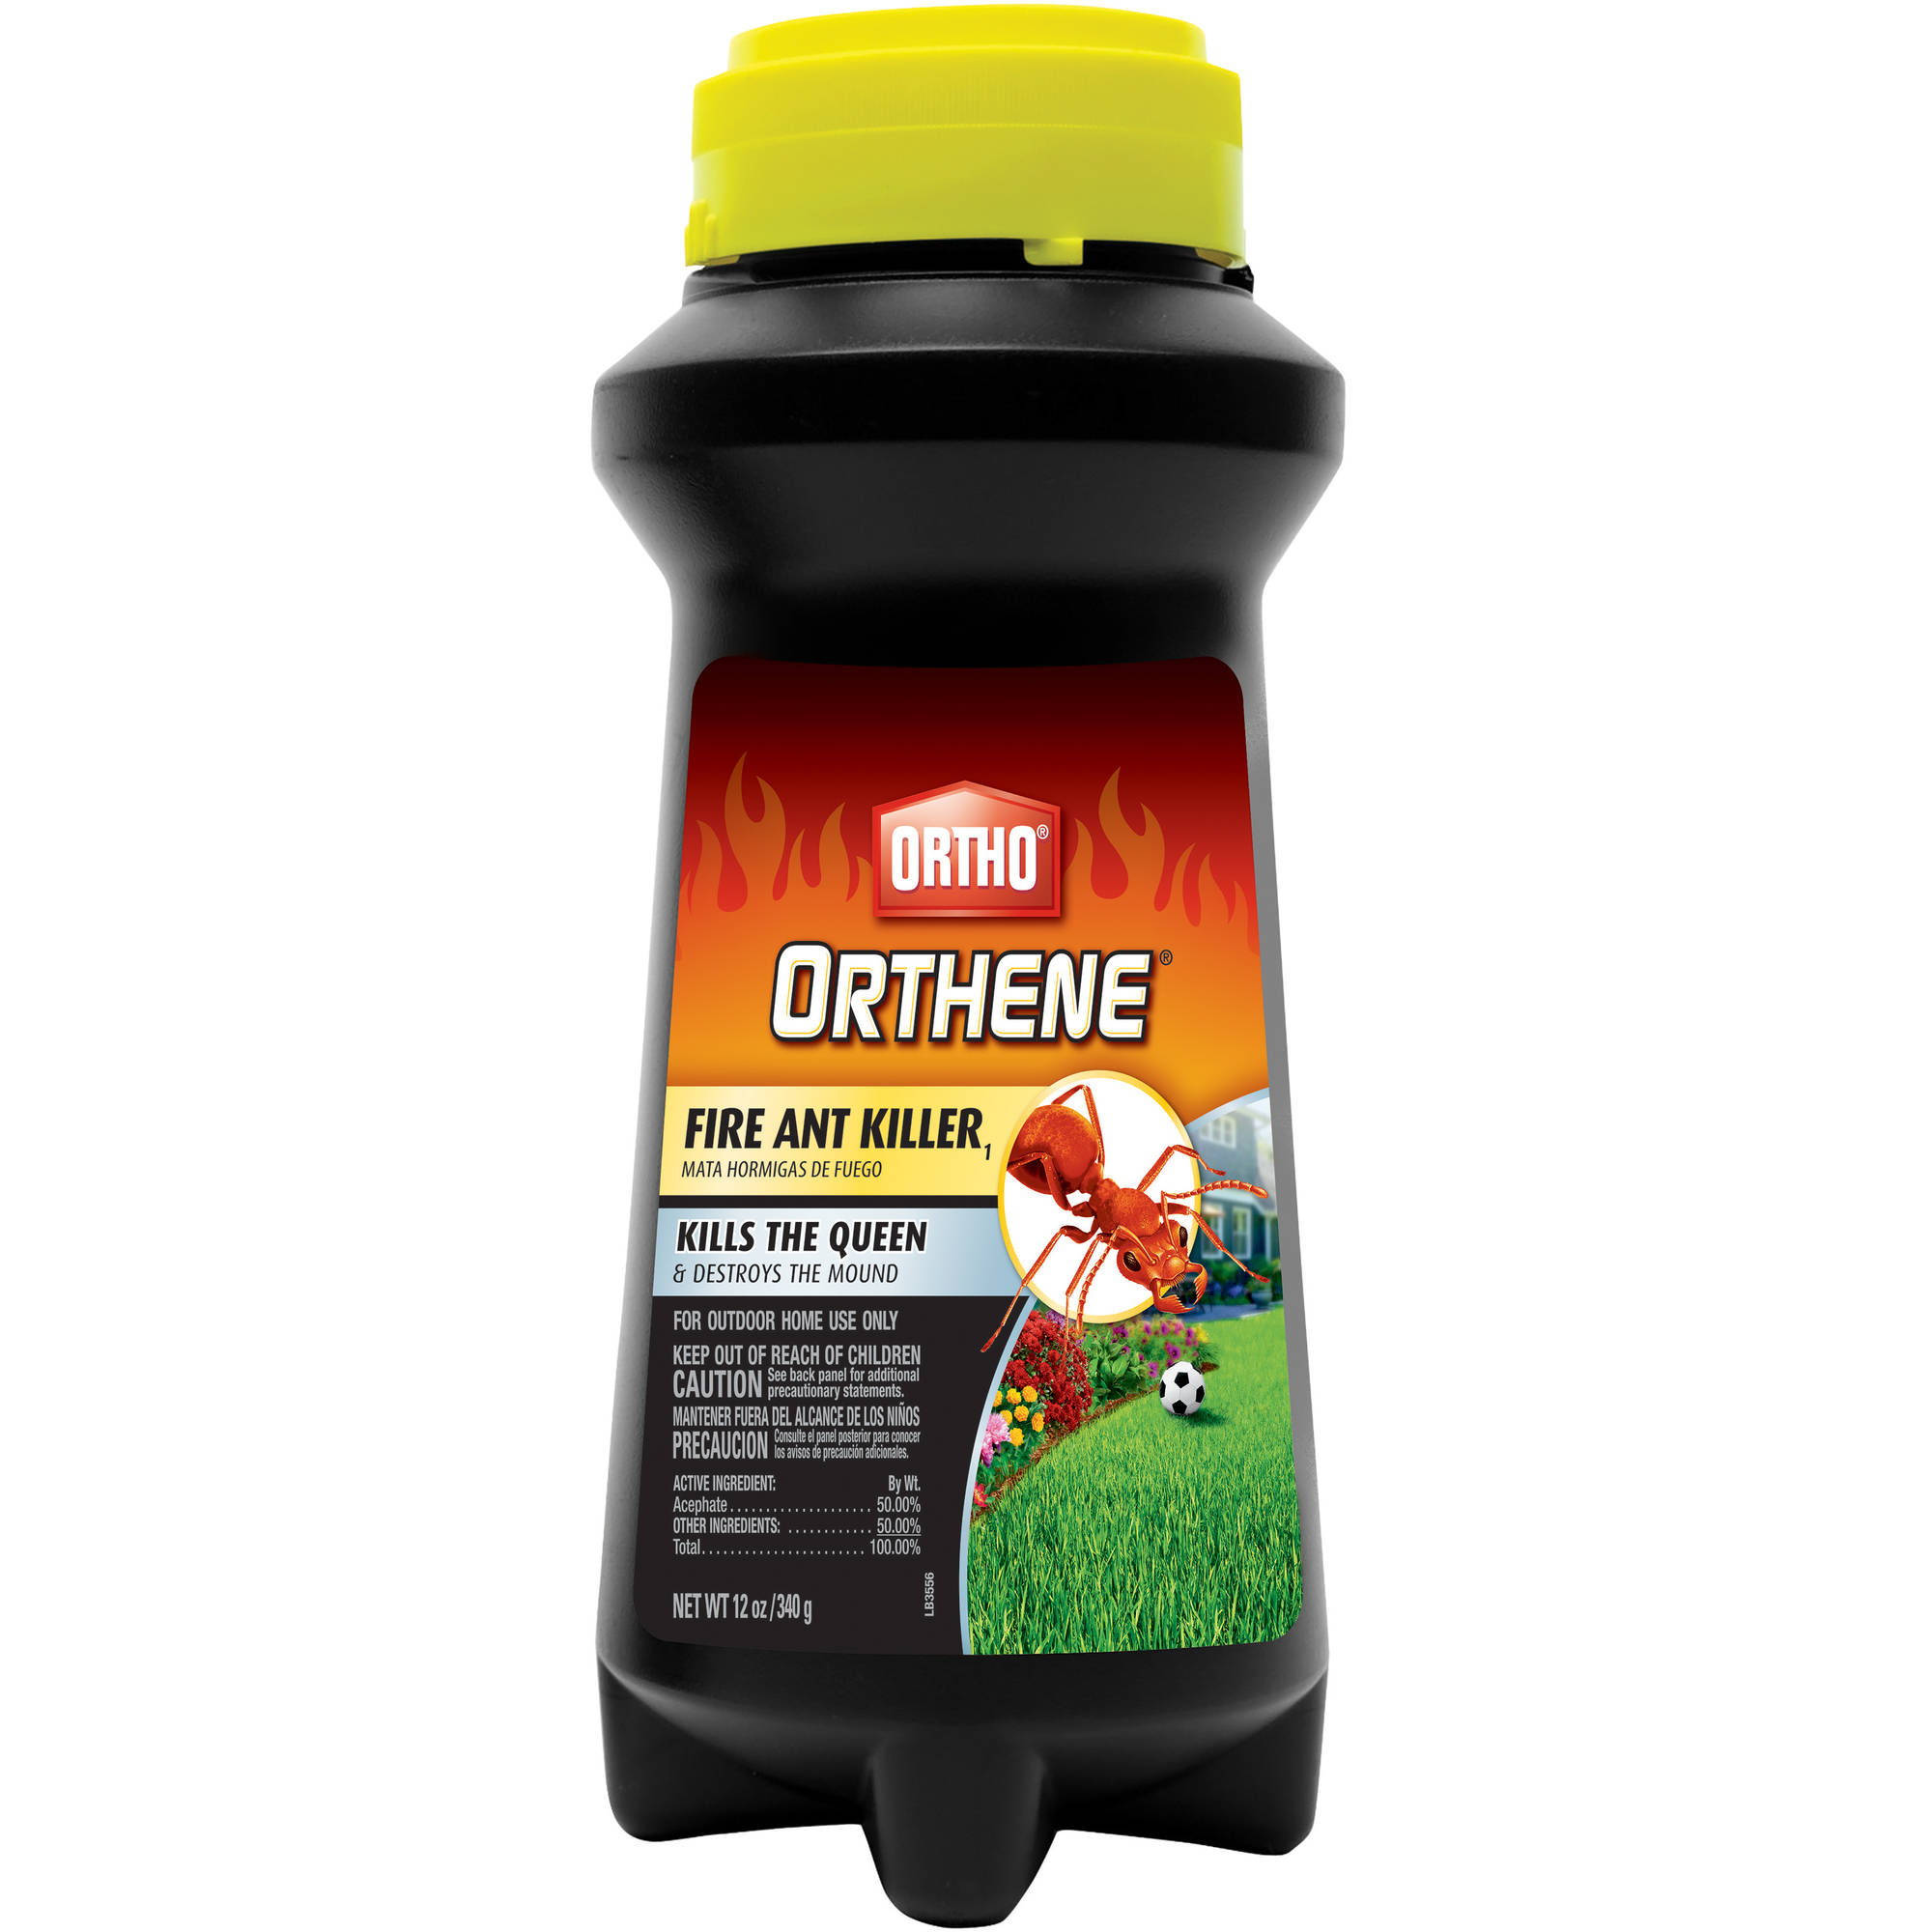 Ortho Orthene Fire Ant Killer, 12oz